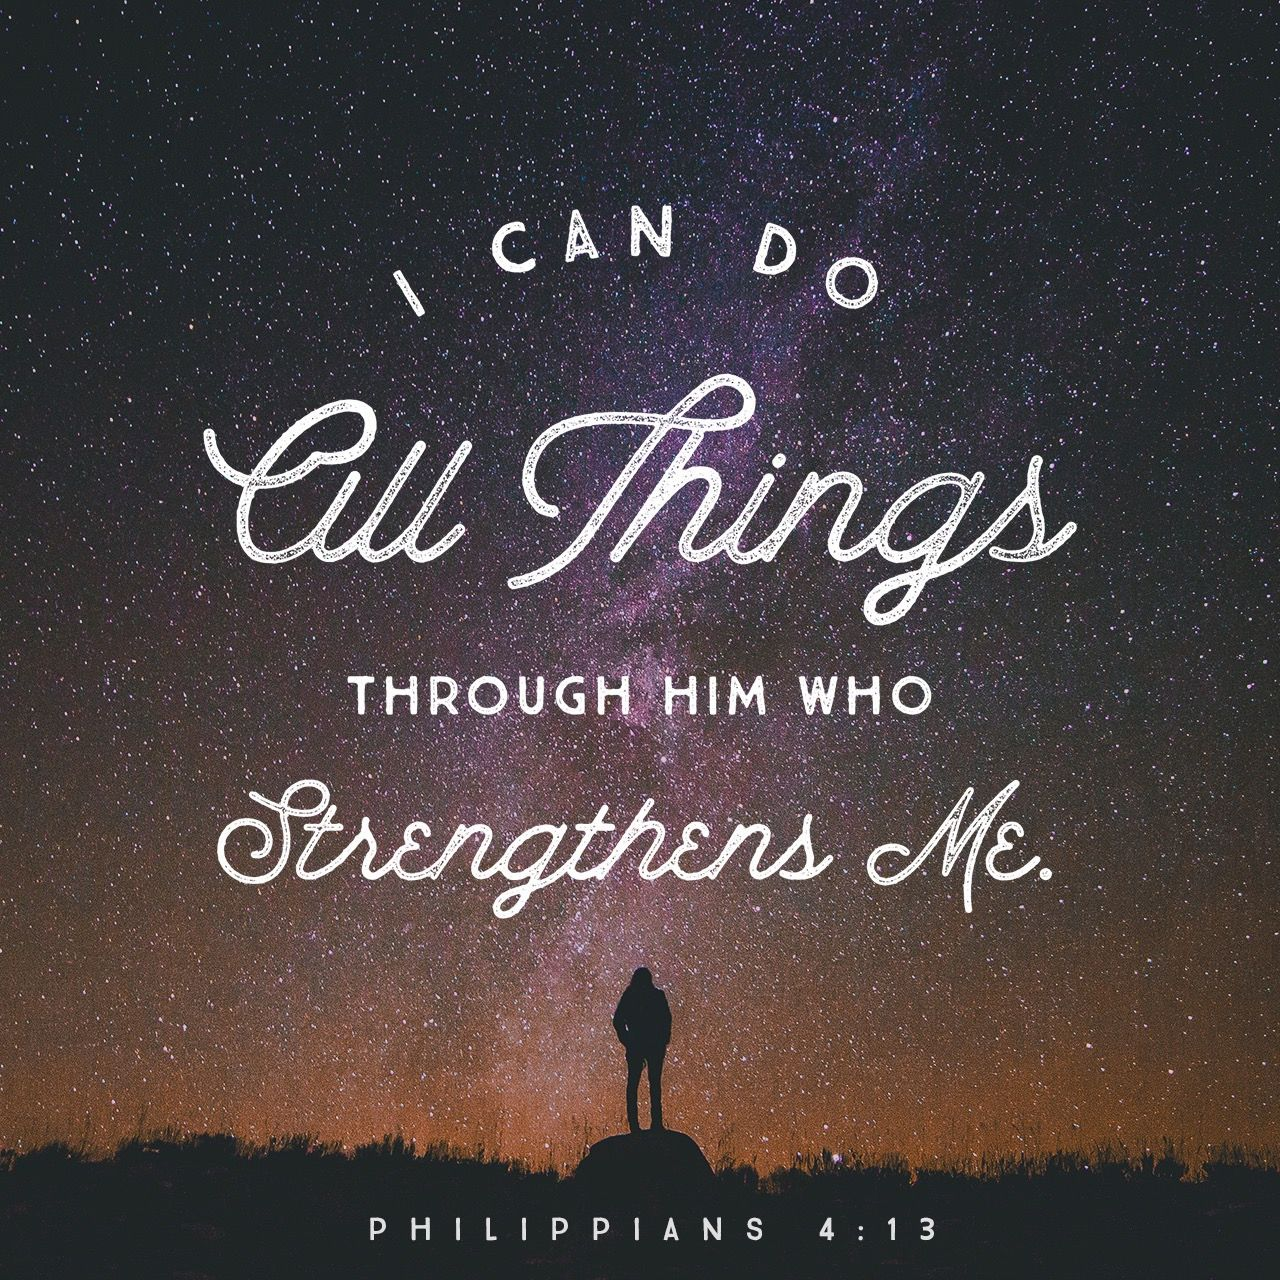 Pin On Bible Verses And Quotes